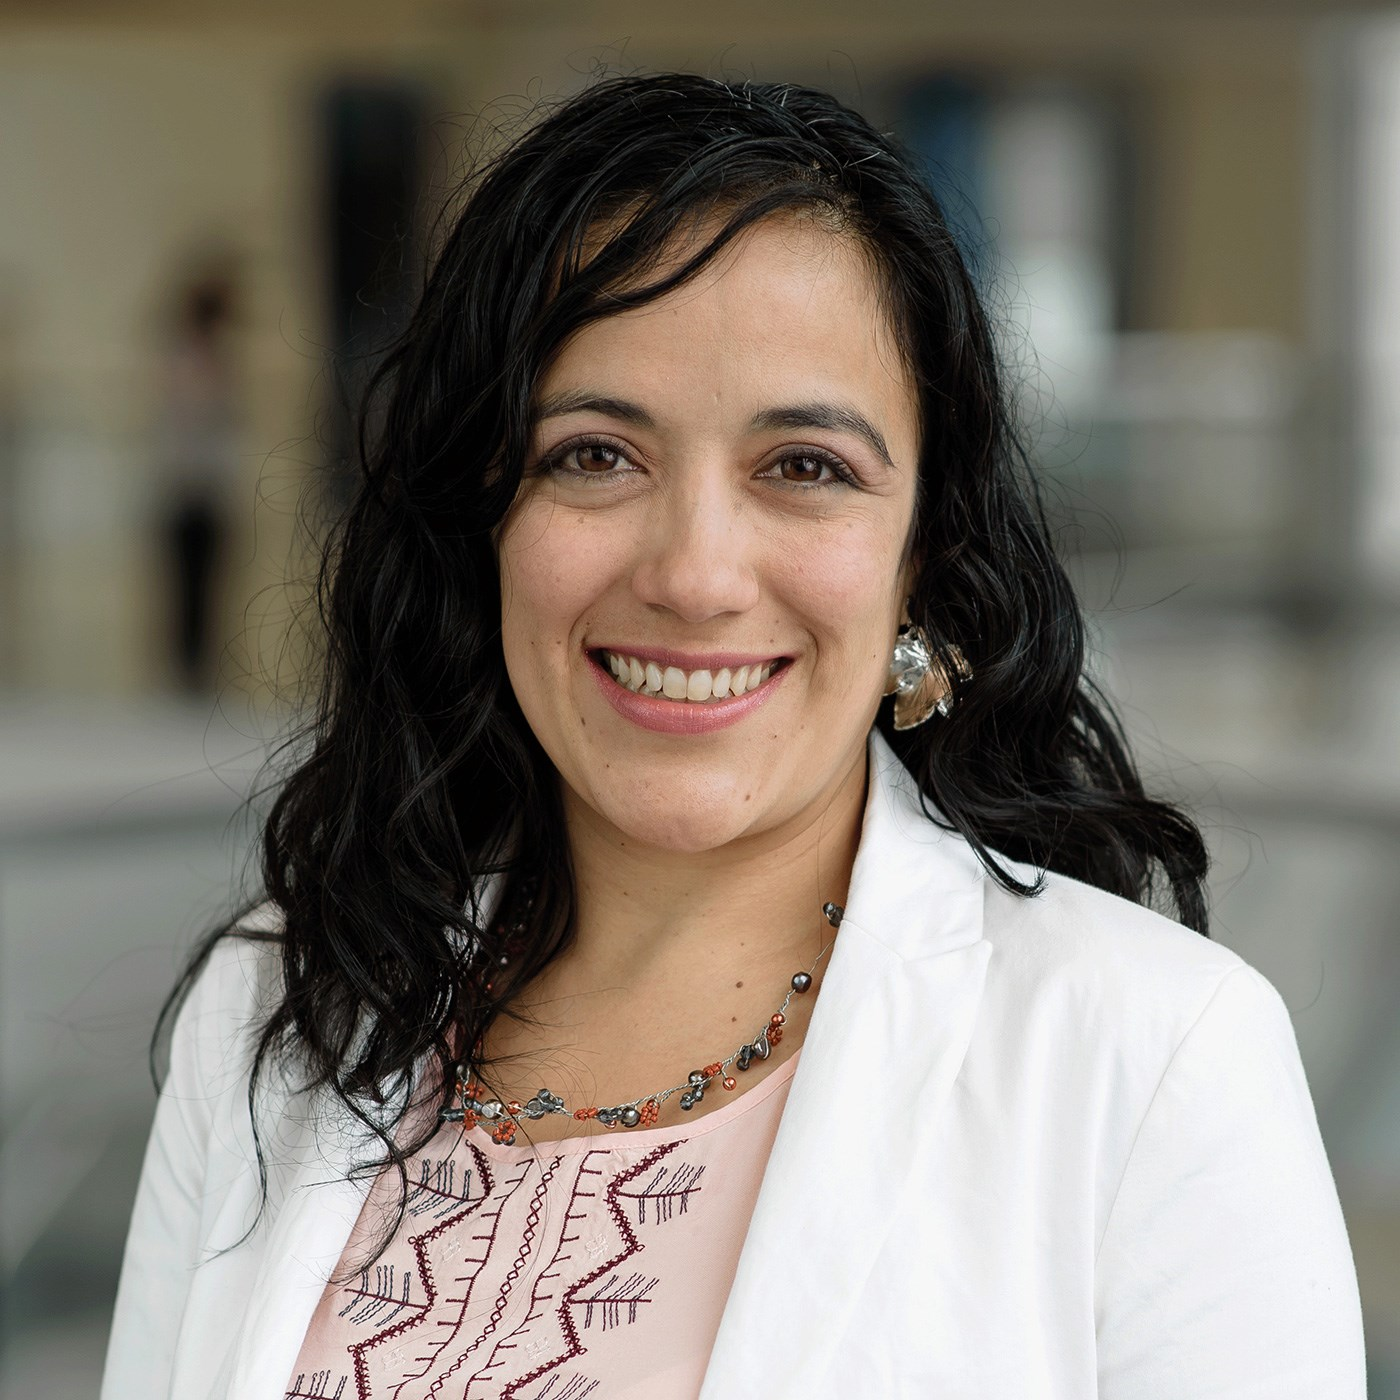 Angelica Duran-Martinez is an Assistant Professor in the College of Fine Arts, Humanities and Social Sciences in the Political Science DEPARTMENT